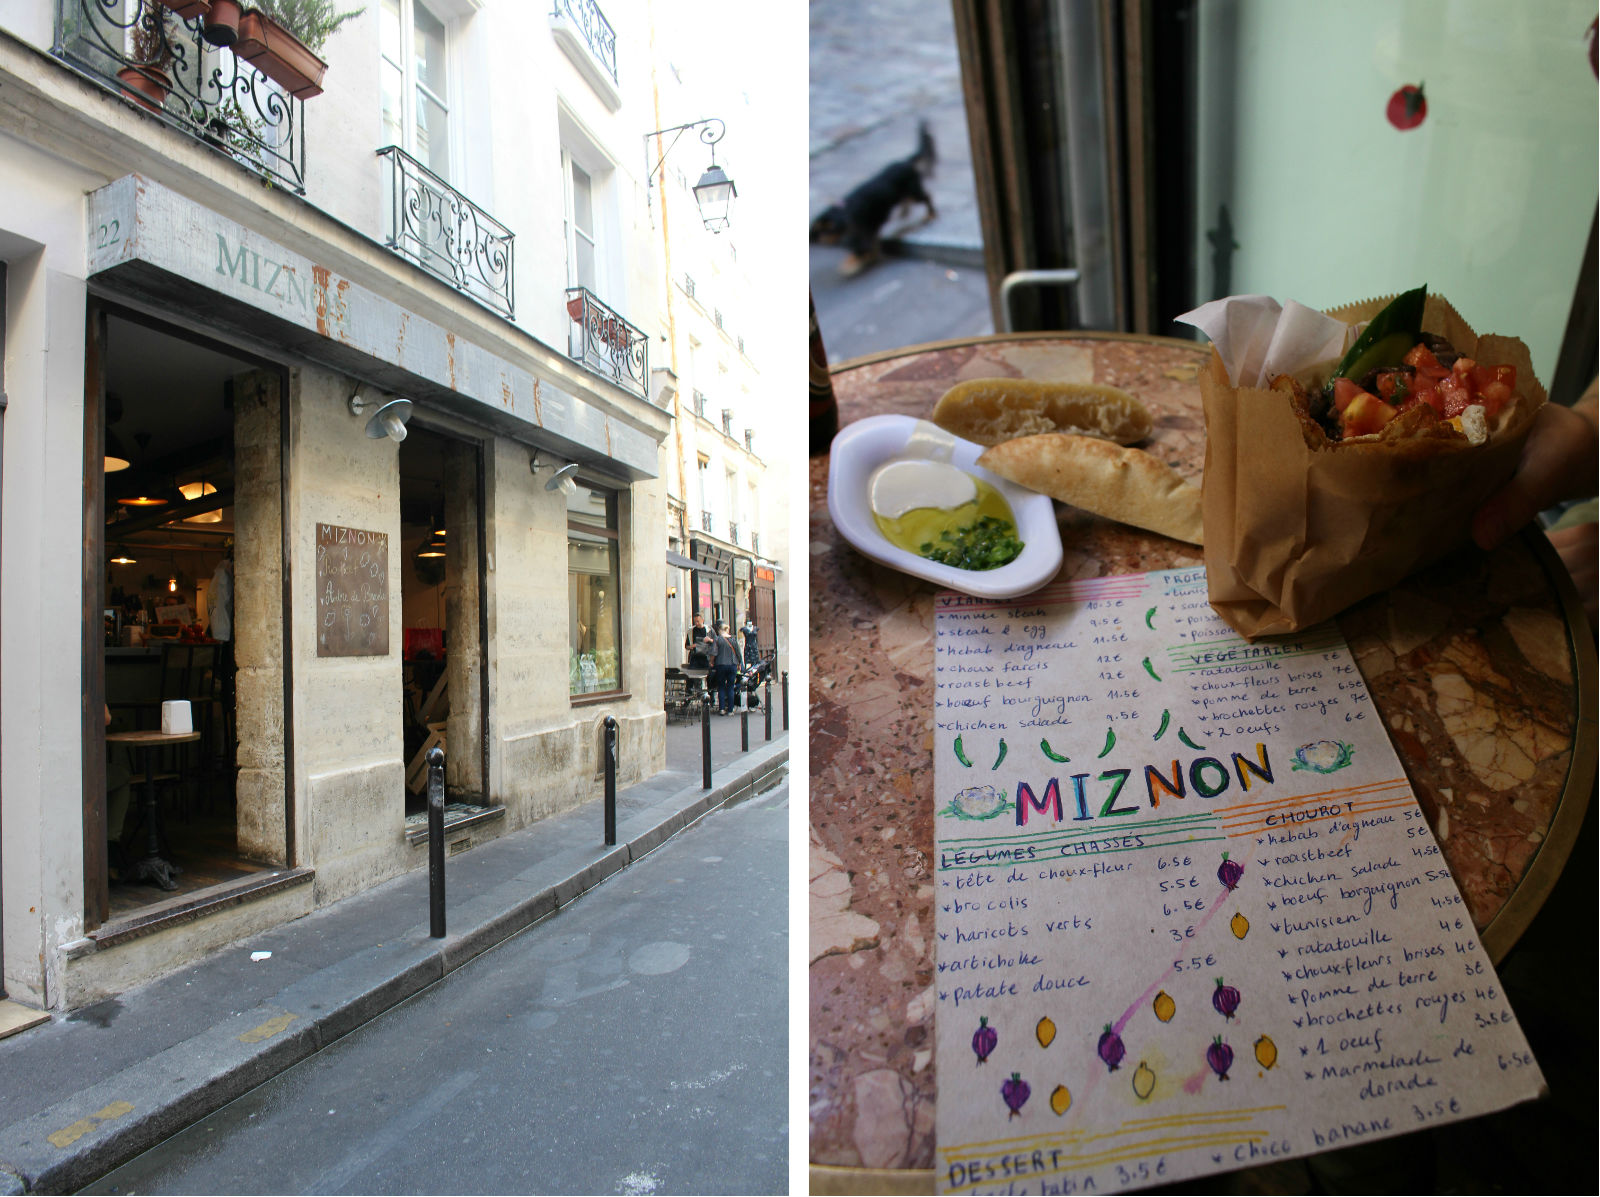 HiP Paris blog. Miznon. Just off the rue des Rosiers and featuring hand-written menus.